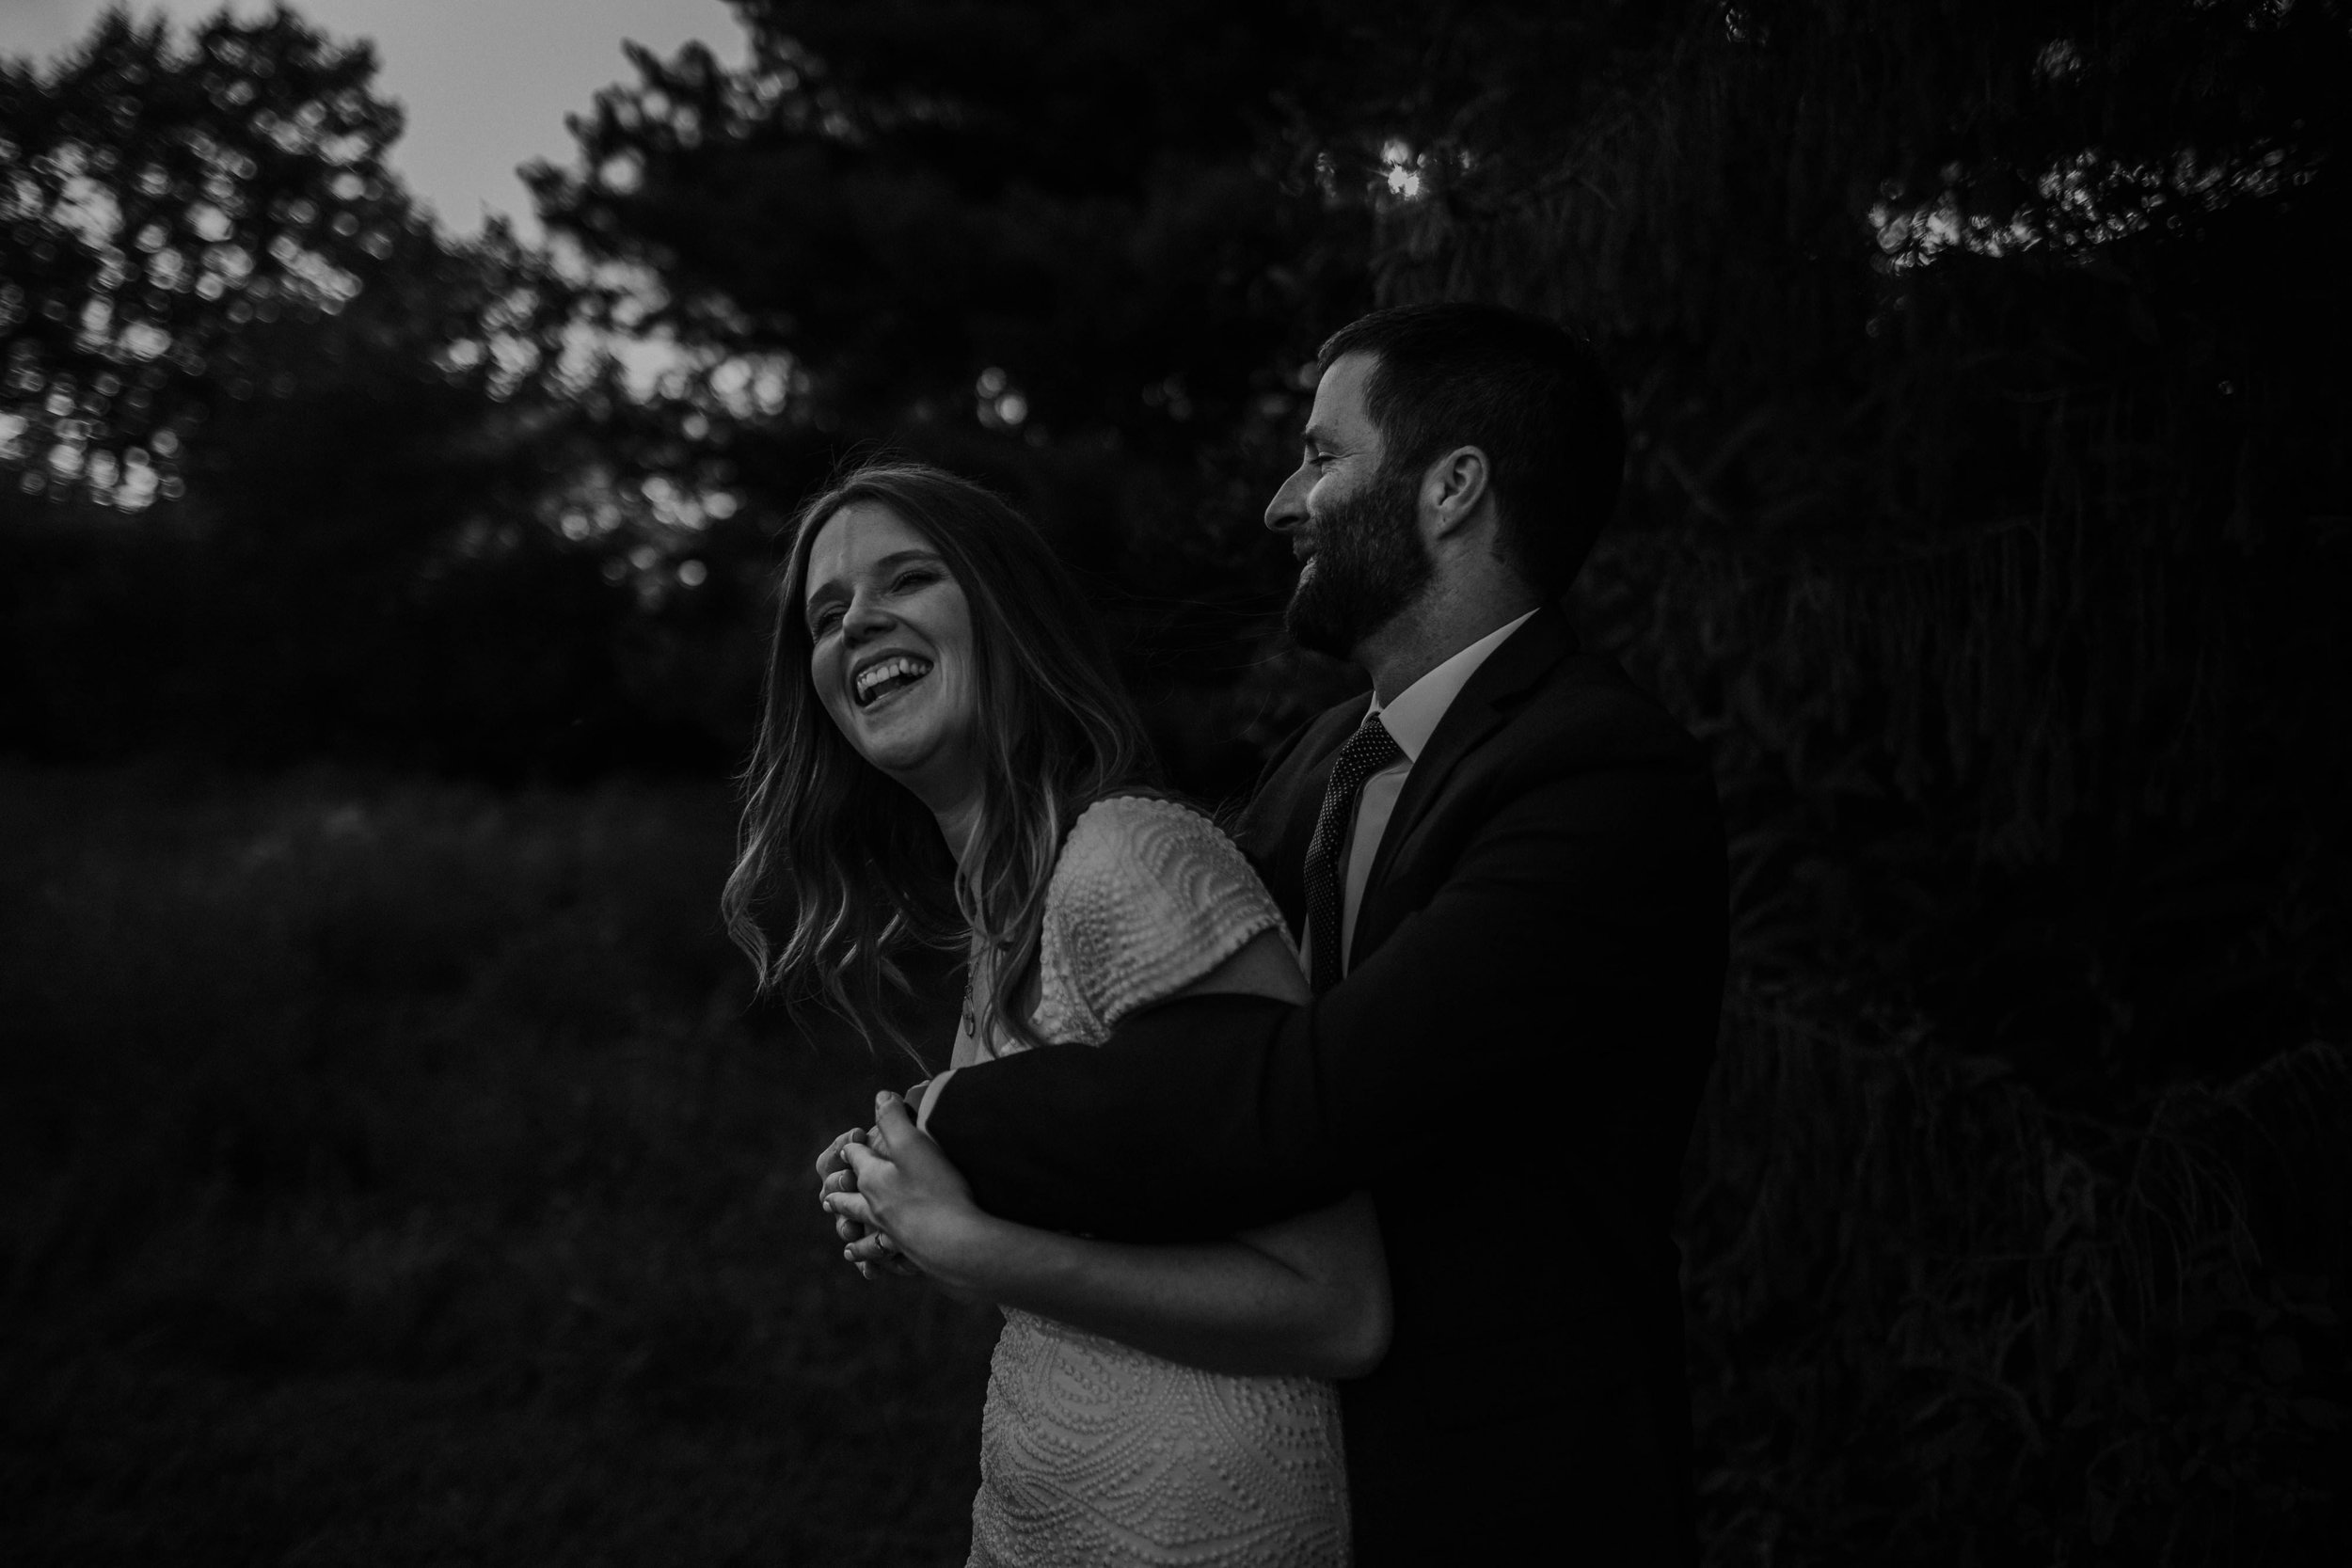 untraditional intimate bed and breakfast wedding orchard house bed and breakfast wedding granville ohio132.jpg